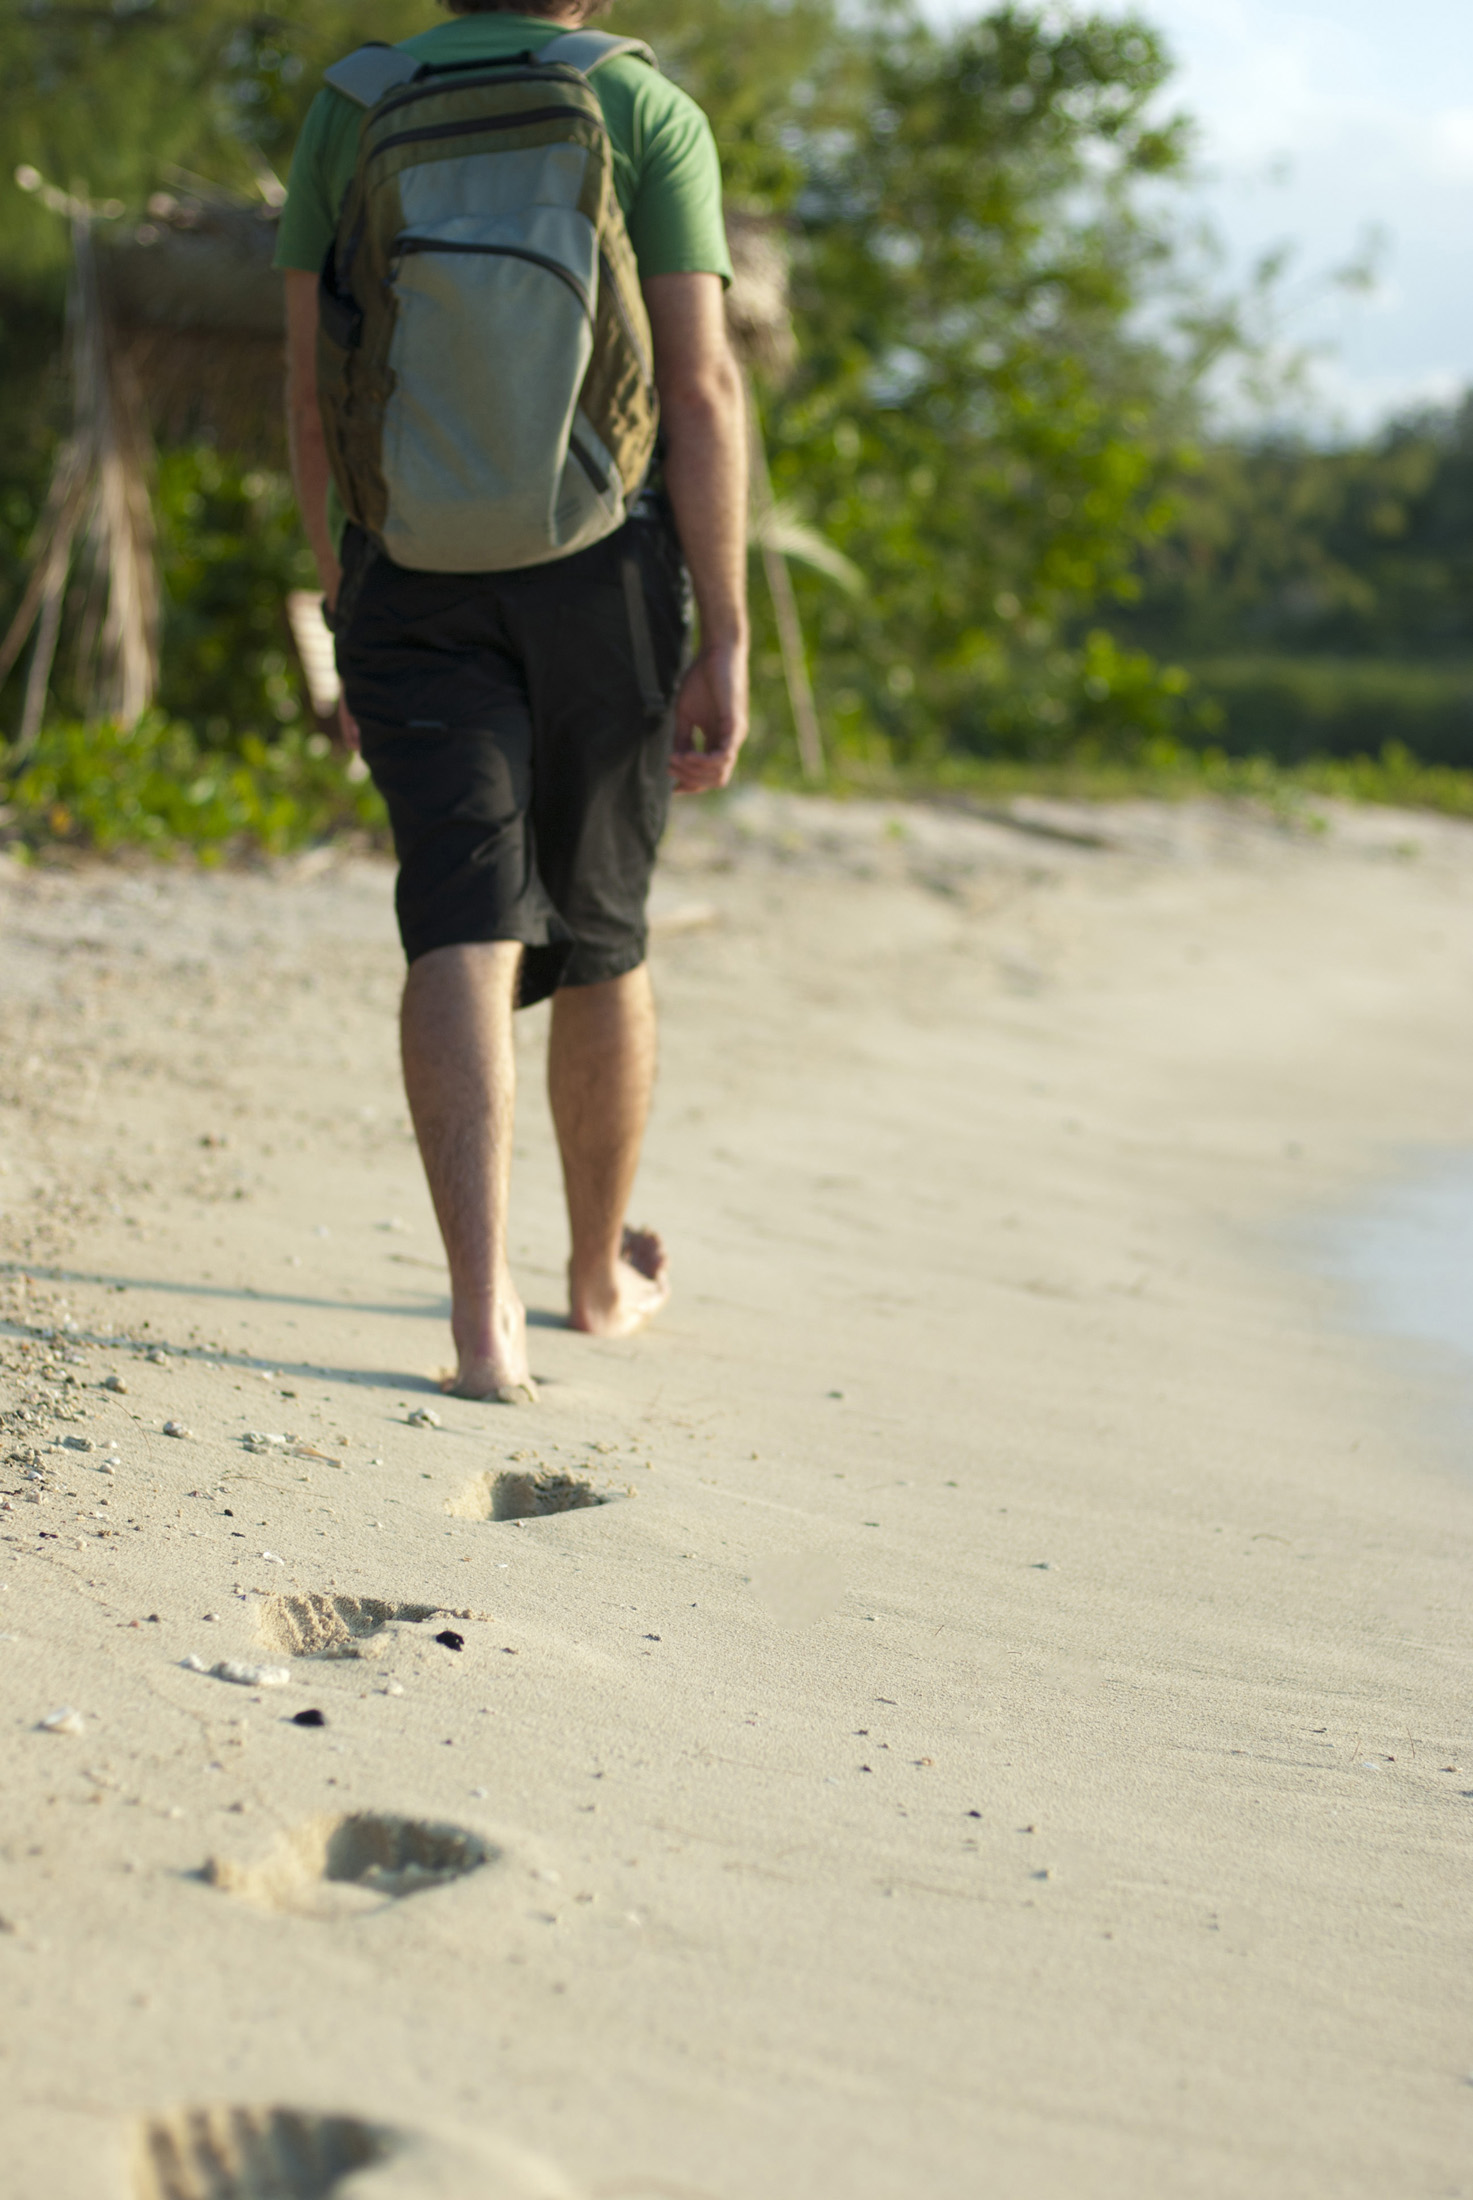 Man wearing a backpack walking away along a sandy beach leaving a trail of footprints